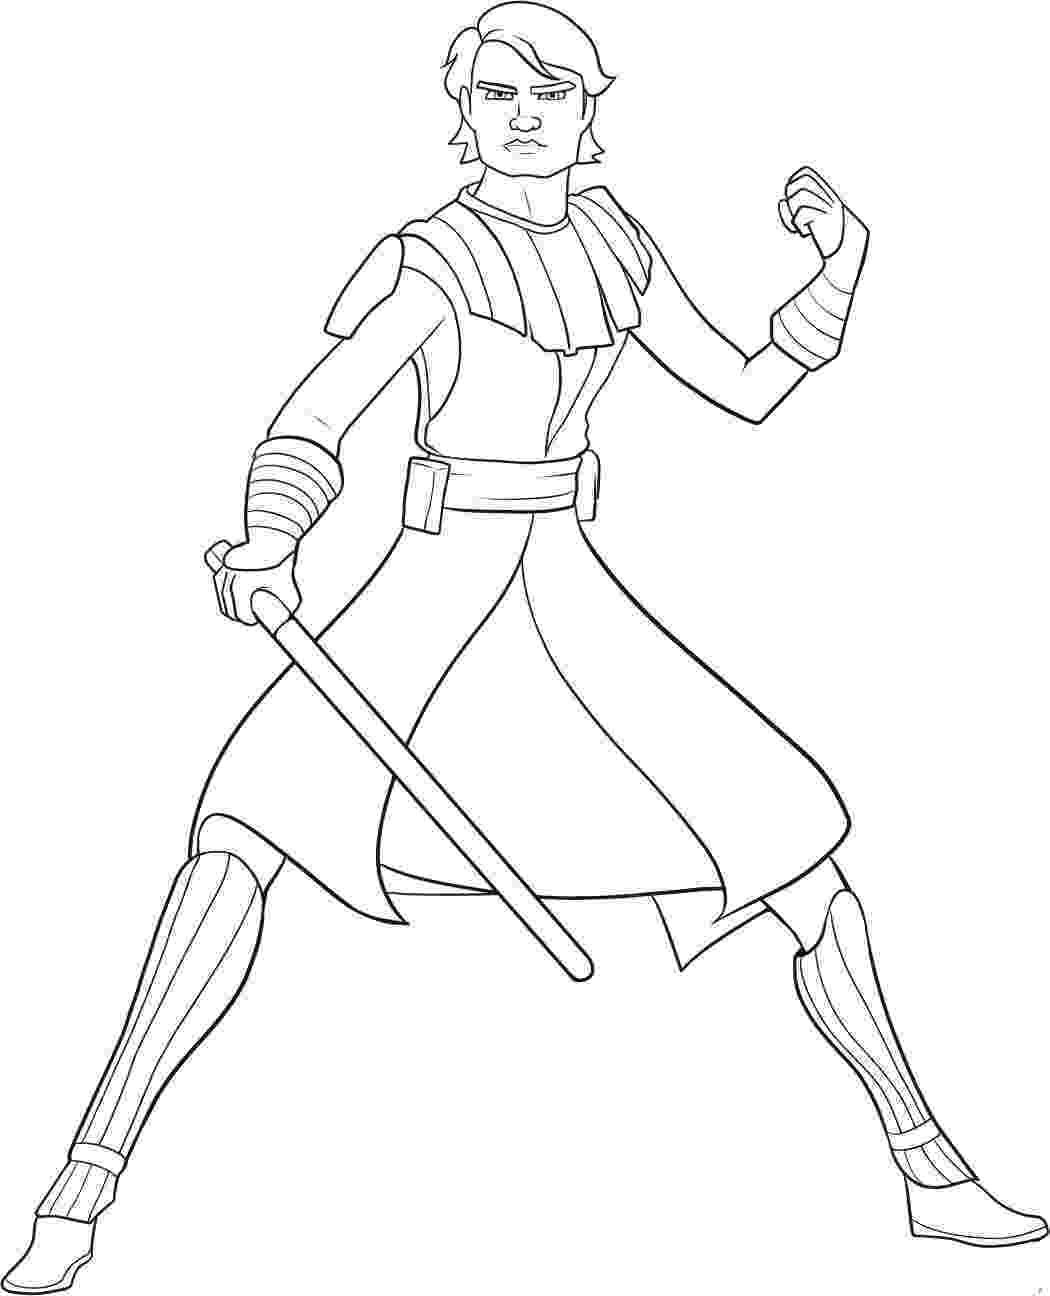 the clone wars coloring pages star wars darth vader yoda coloring pages for kids storm wars clone the pages coloring